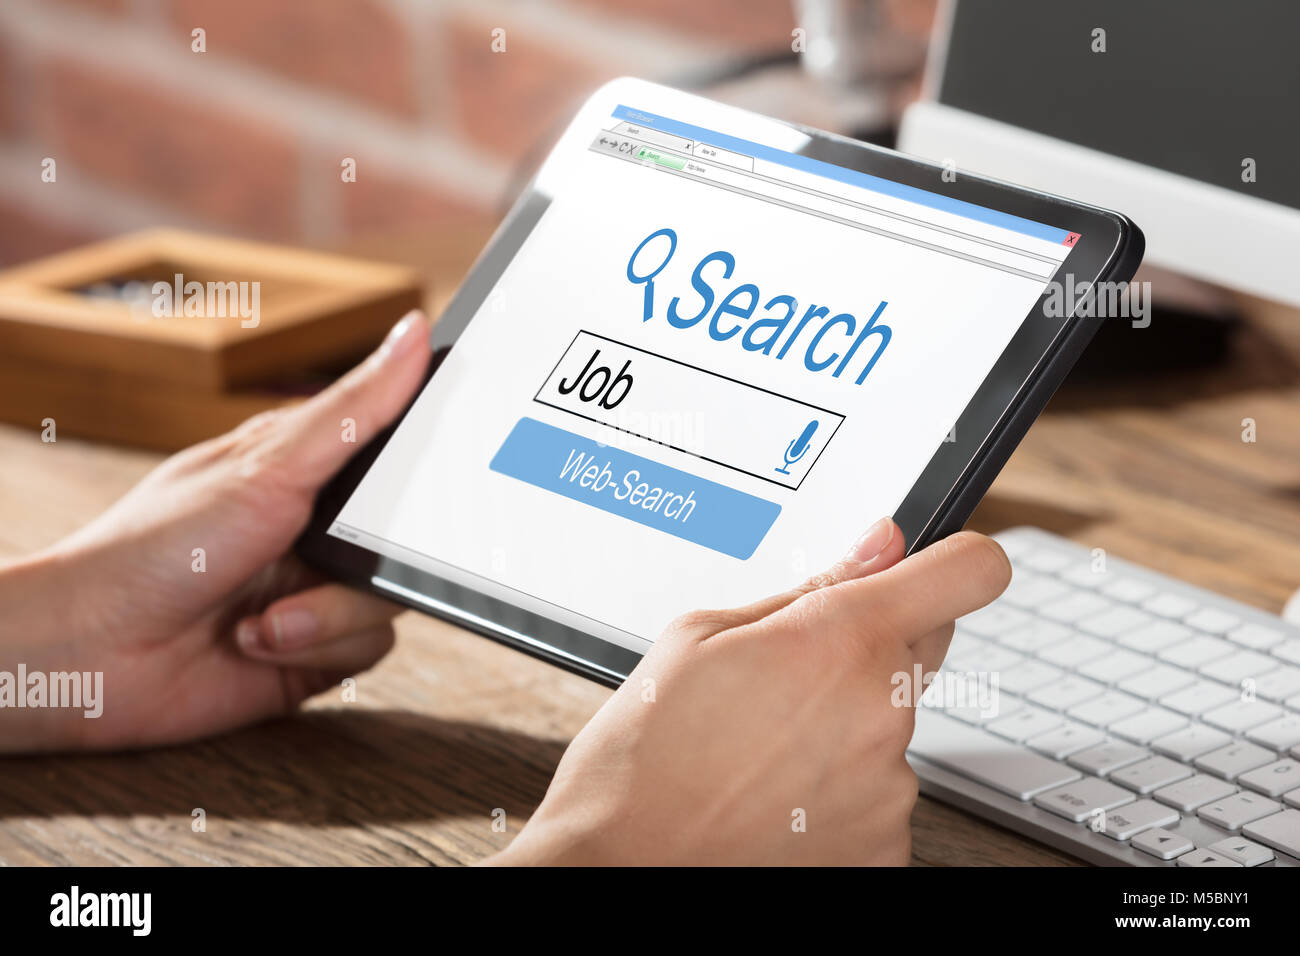 Person Searching Online Job On Digital Tablet - Stock Image